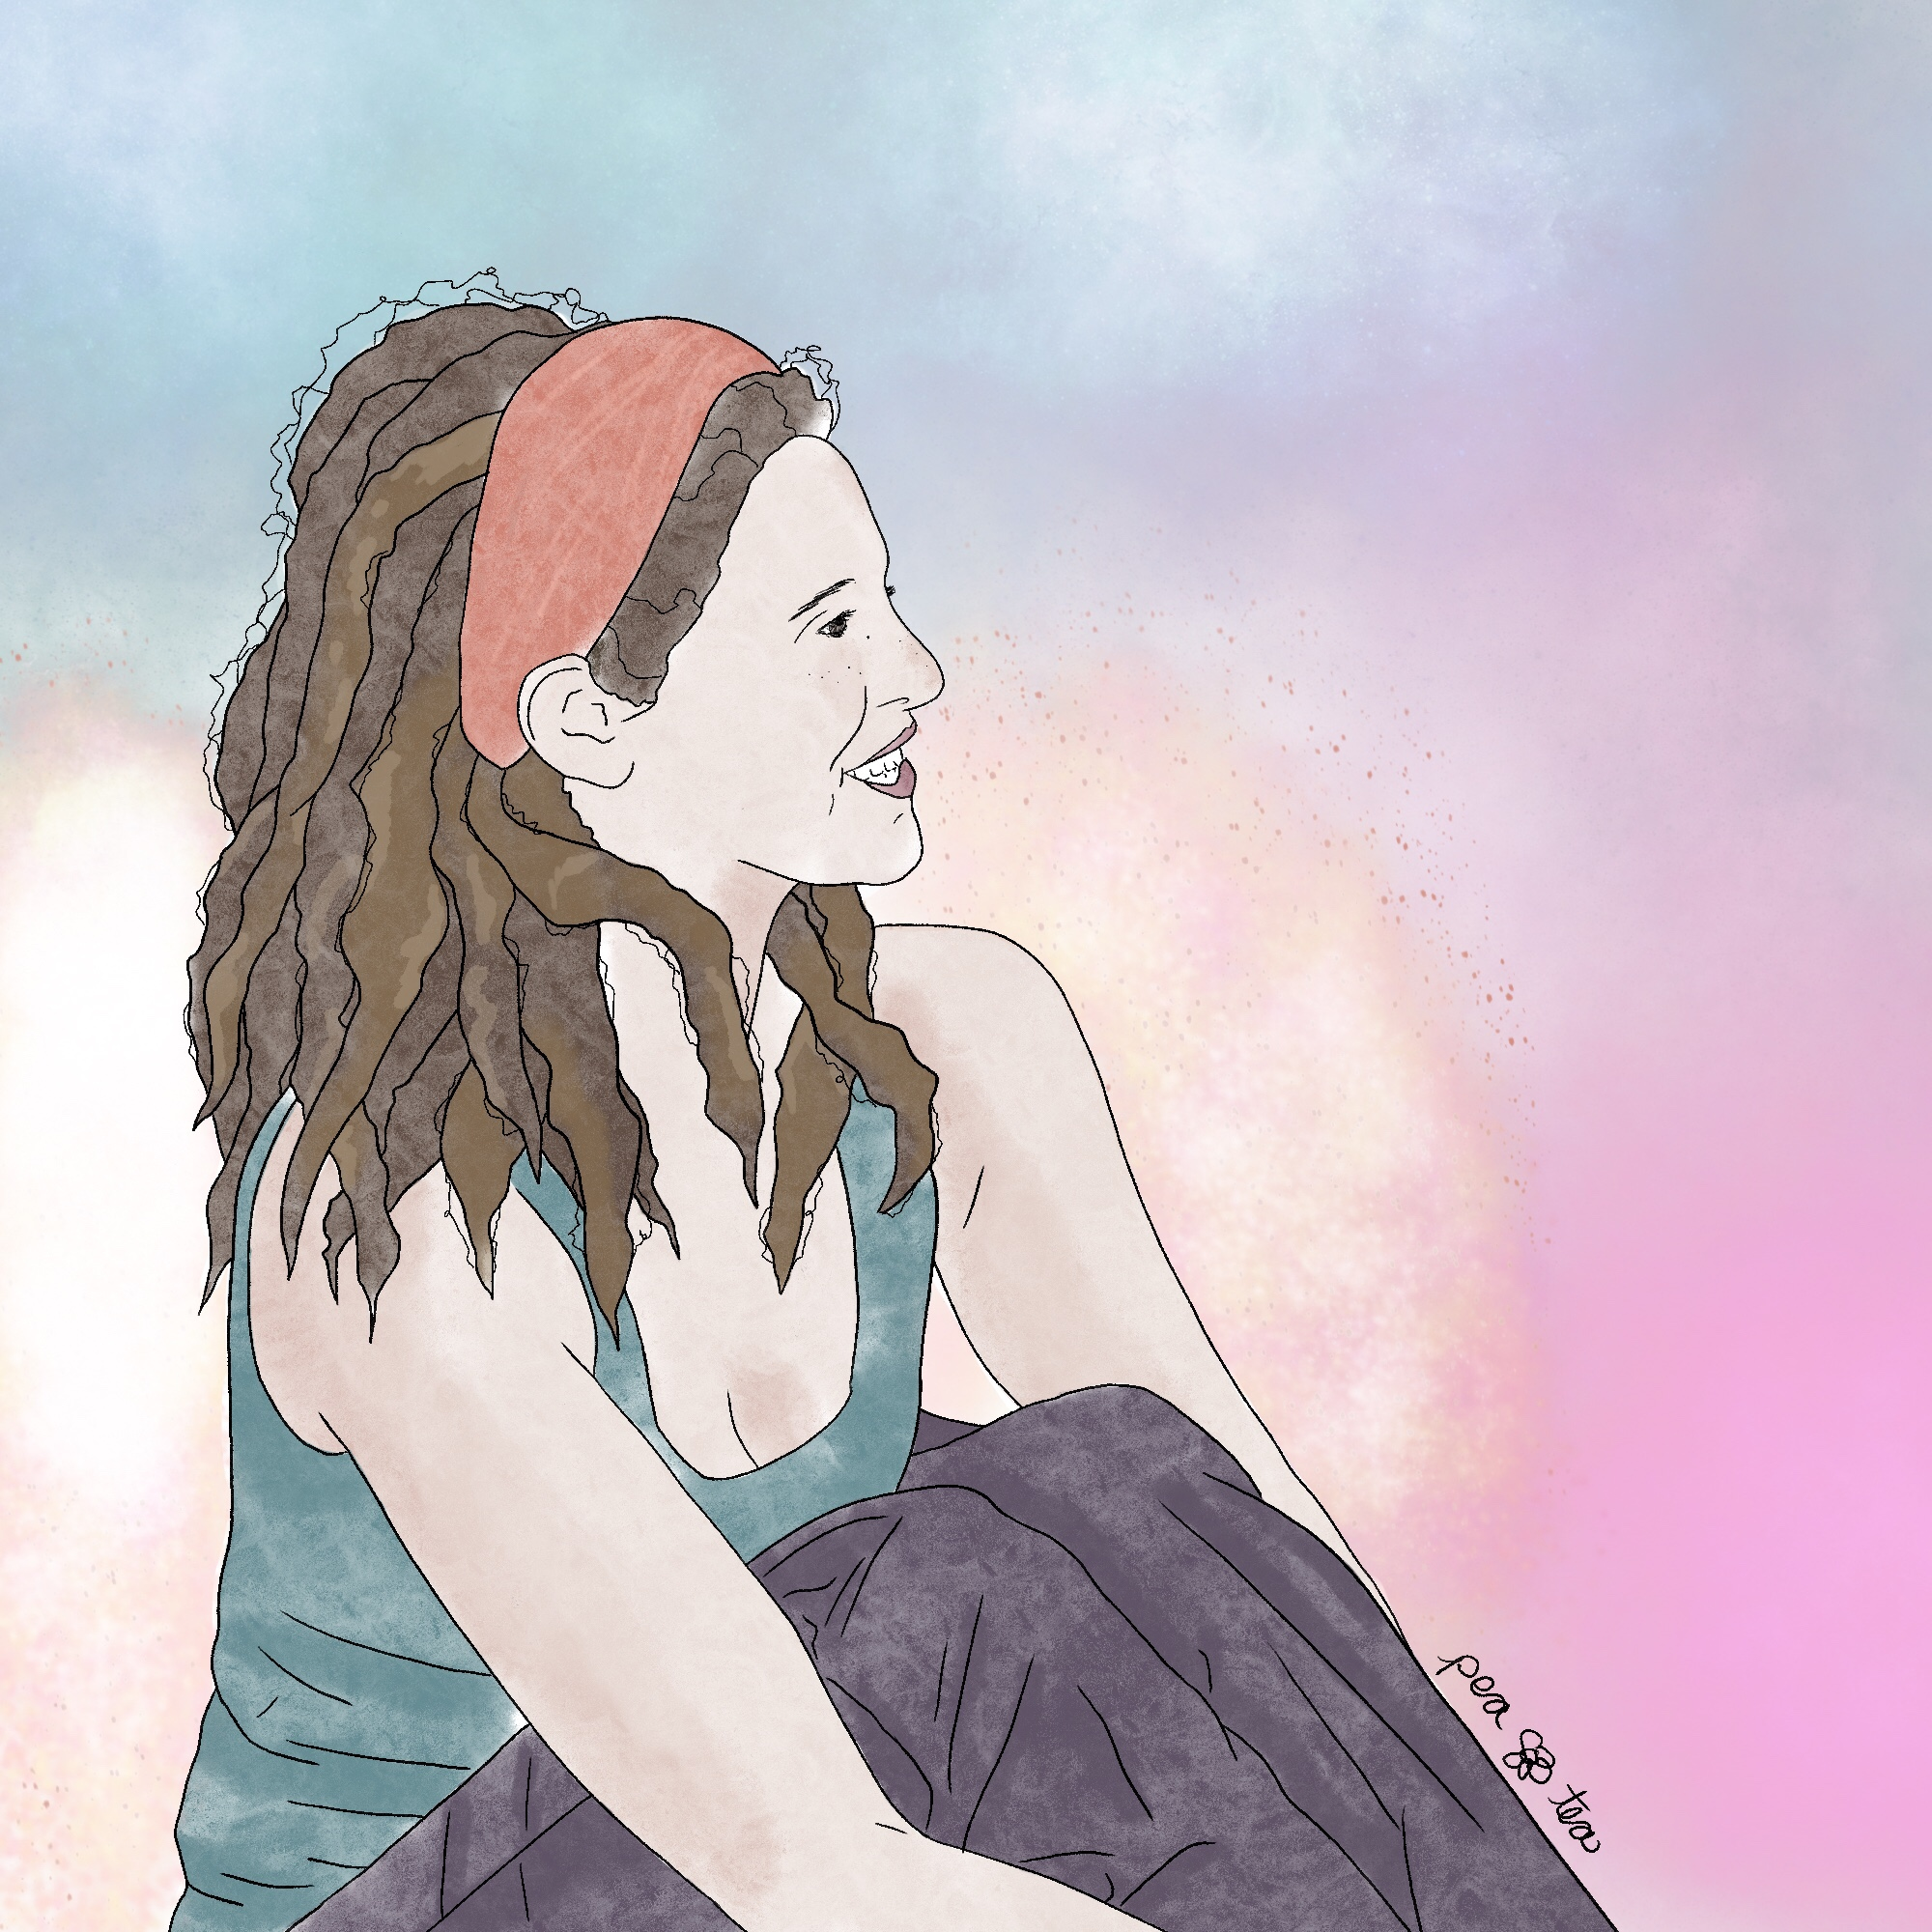 Colored pencil sketch of a beautiful woman with golden brown dreadlocks down her shoulders. She's sitting with her arms wrapped under her knees in profile, and smiling a bright smile. She's wearing a teal tank top an dark purple slacks, with a coppery cloth band holding her hair back from her face. She's surrounded in a glittering, golden light, with deep teals and purple nebulas surrounding her.